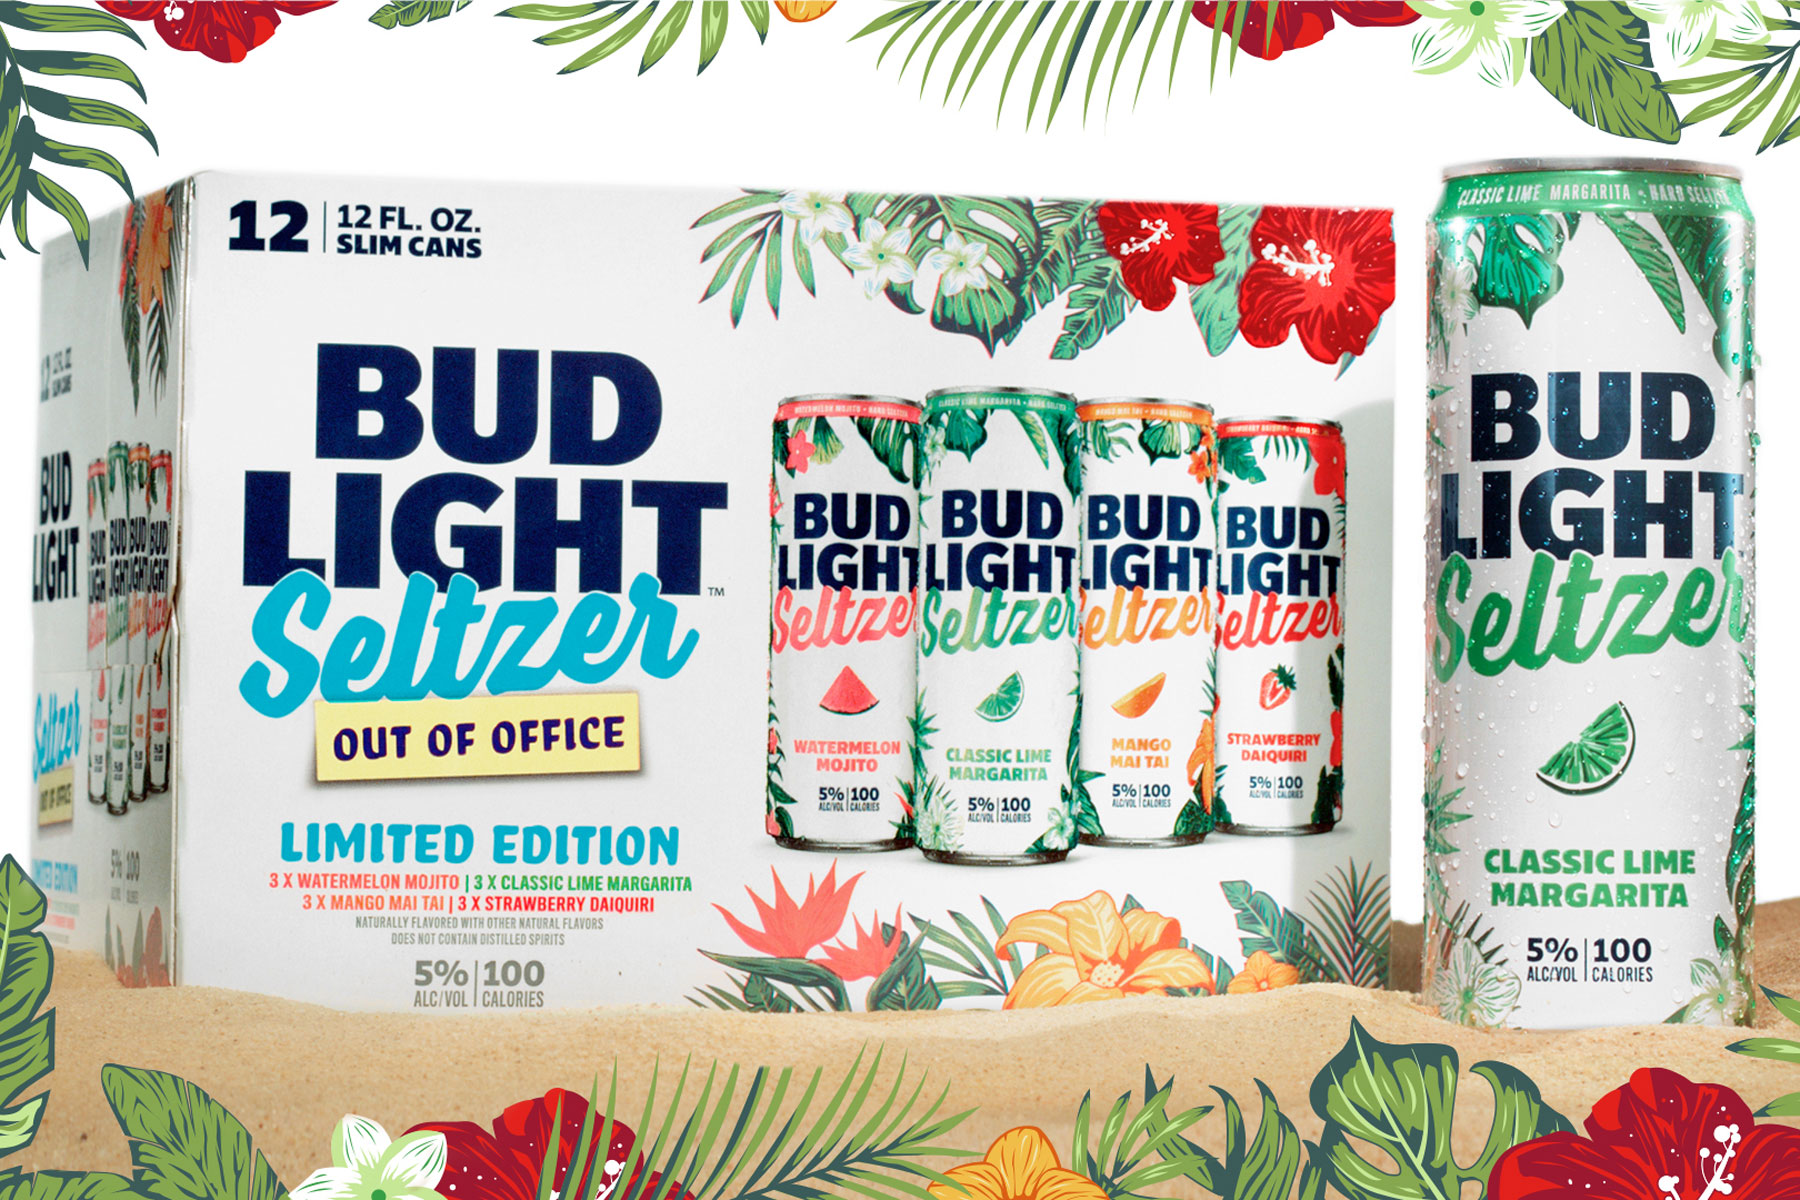 Bud Light Seltzer out of office flavors